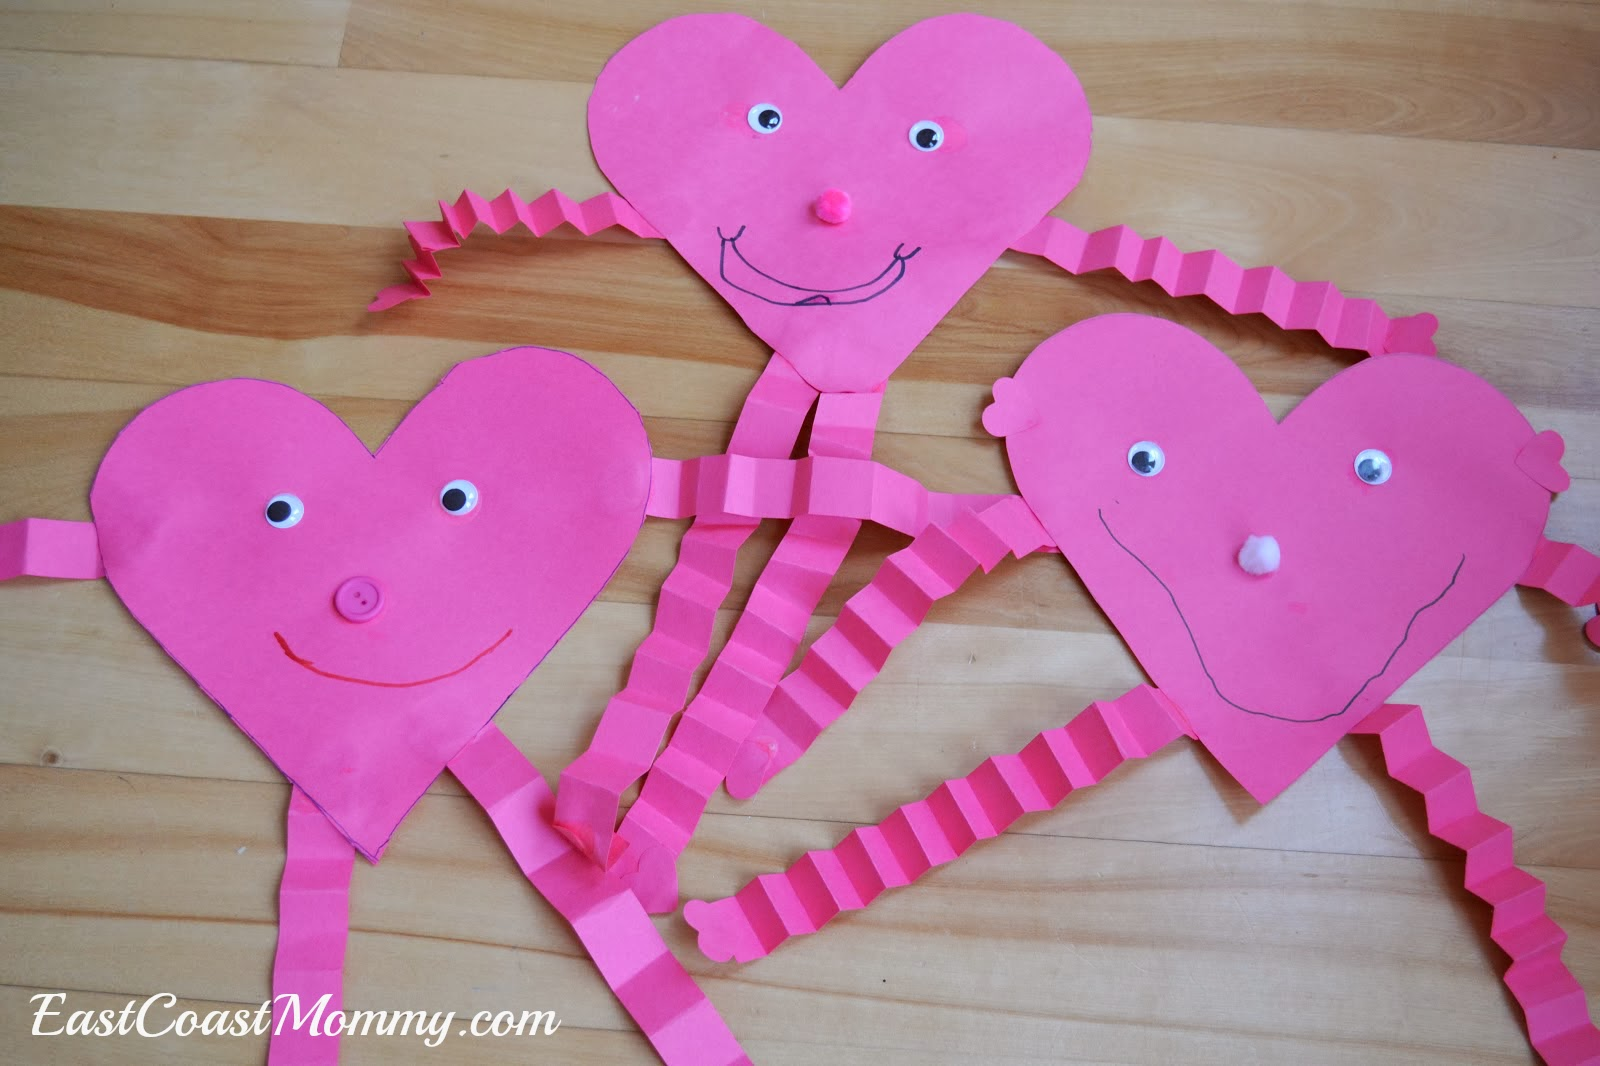 East coast mommy preschool craft heart person for Easy heart crafts